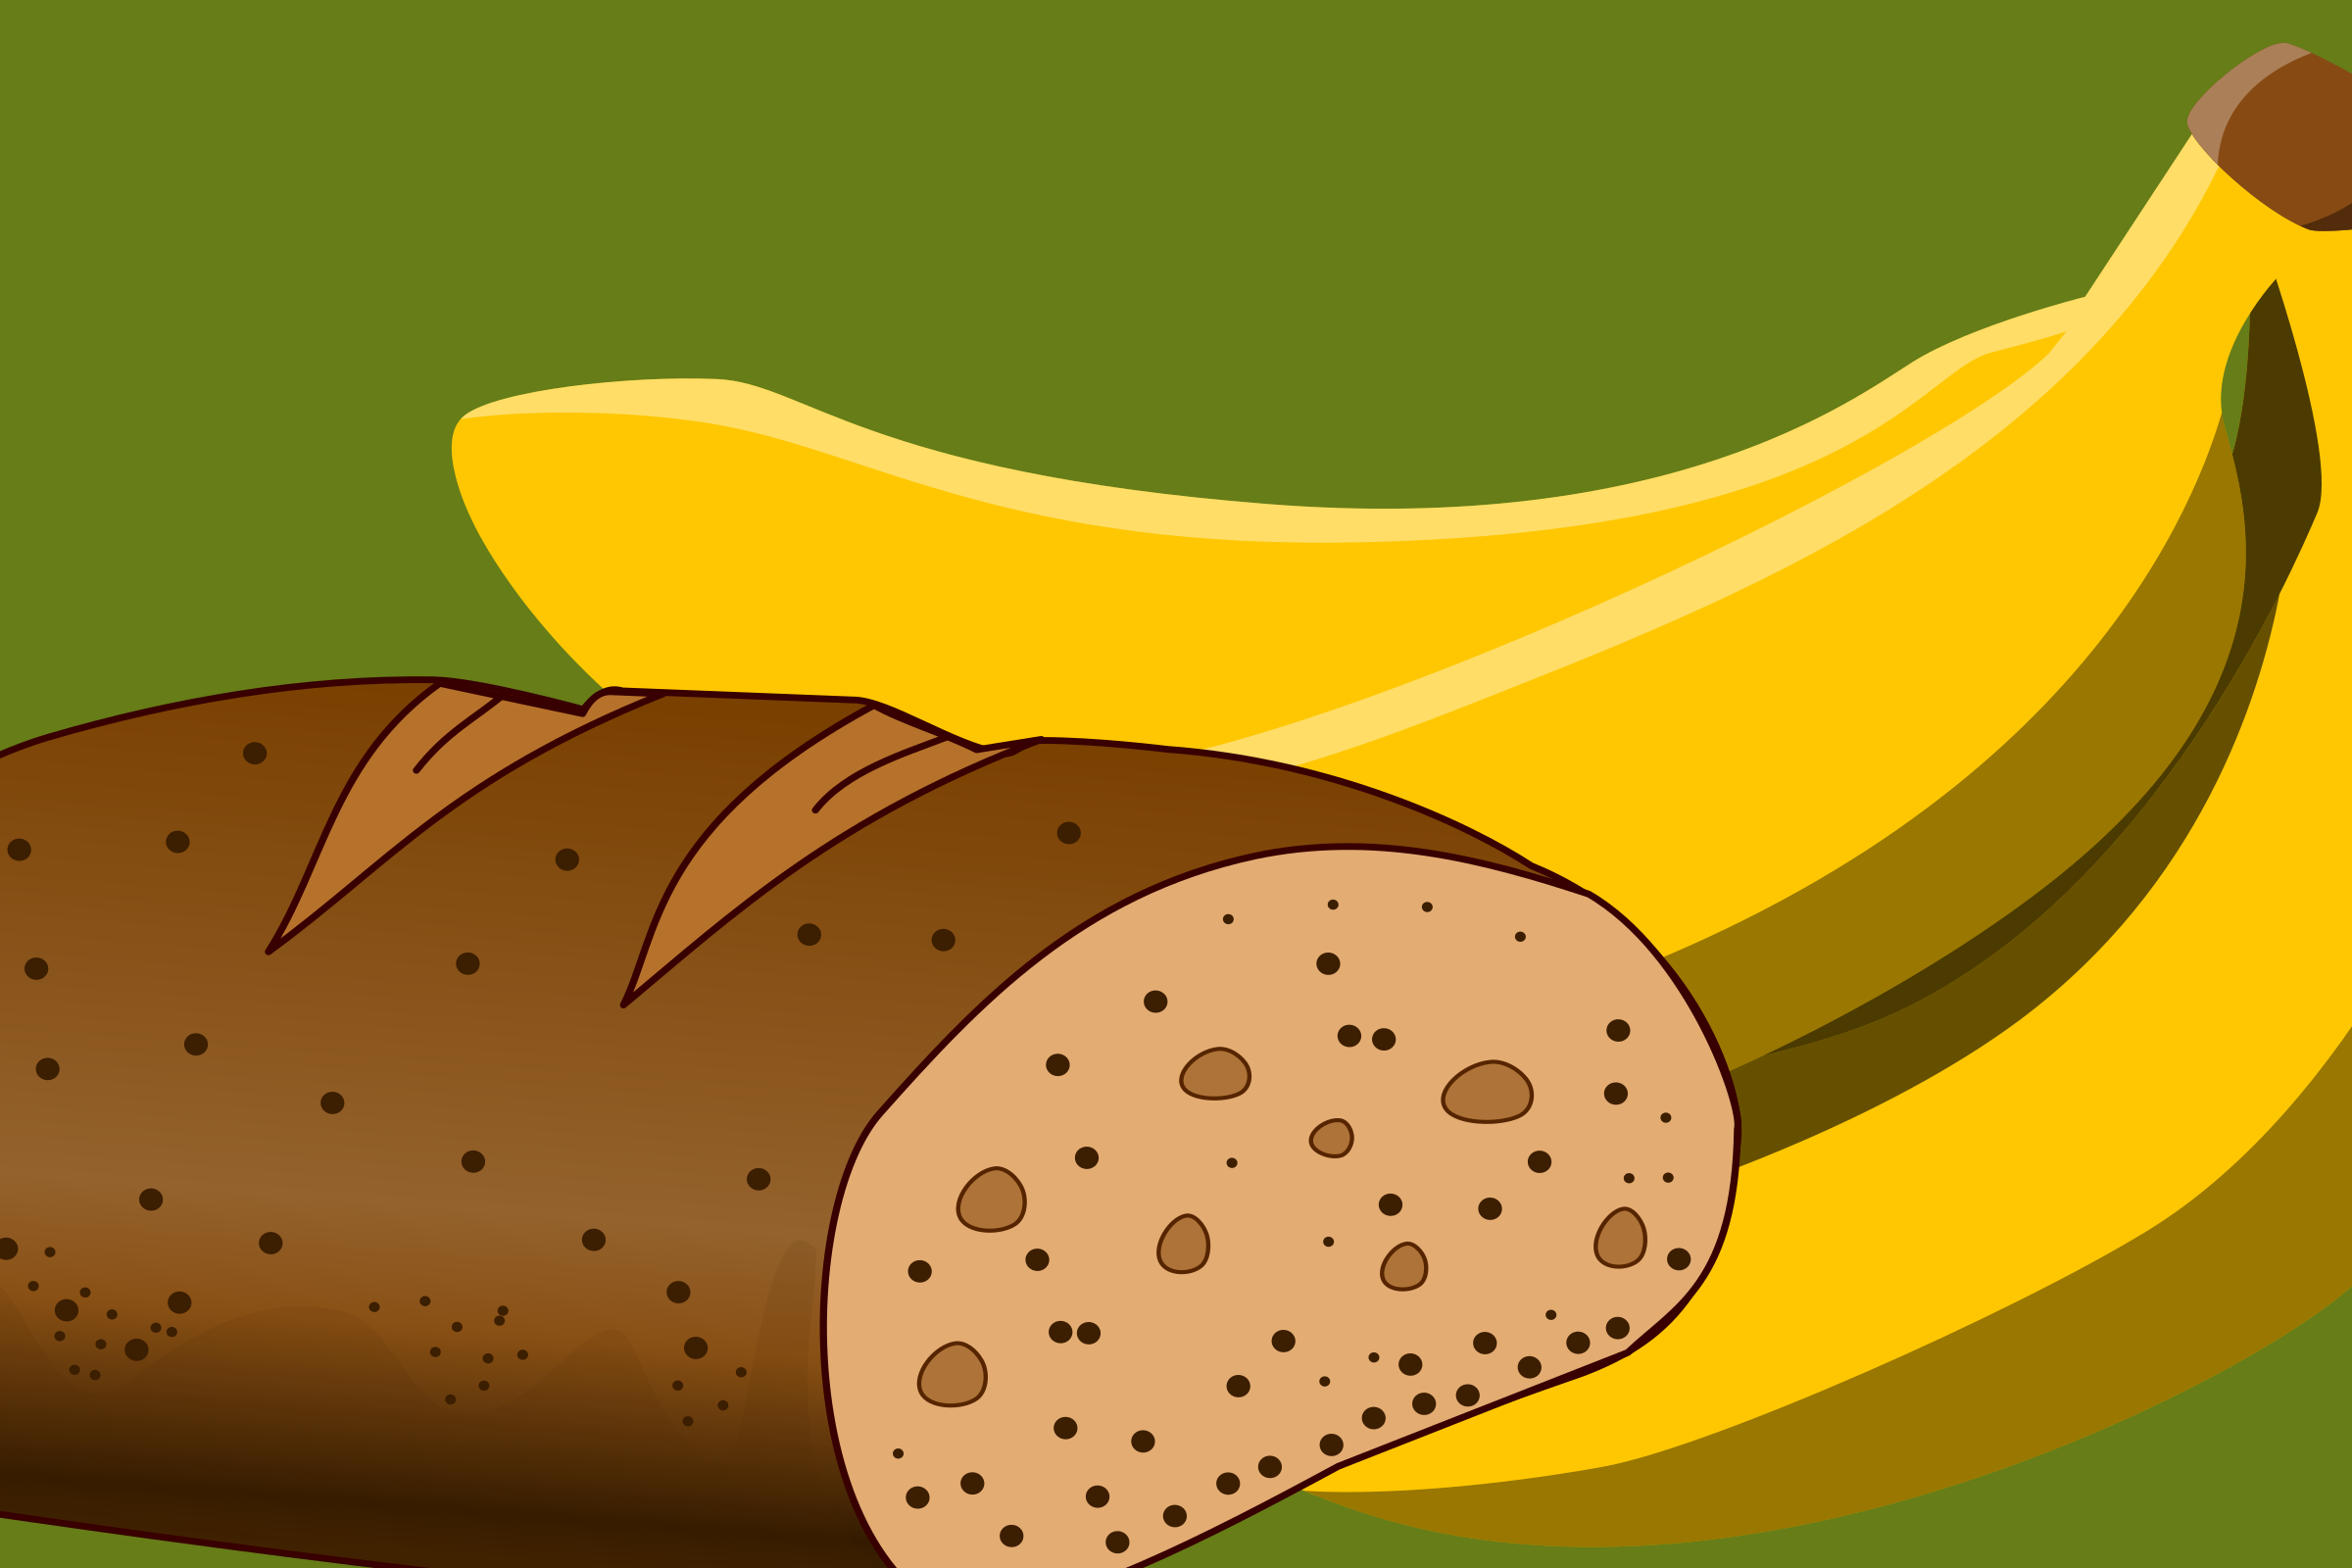 Bread and banana as still life by yamachem